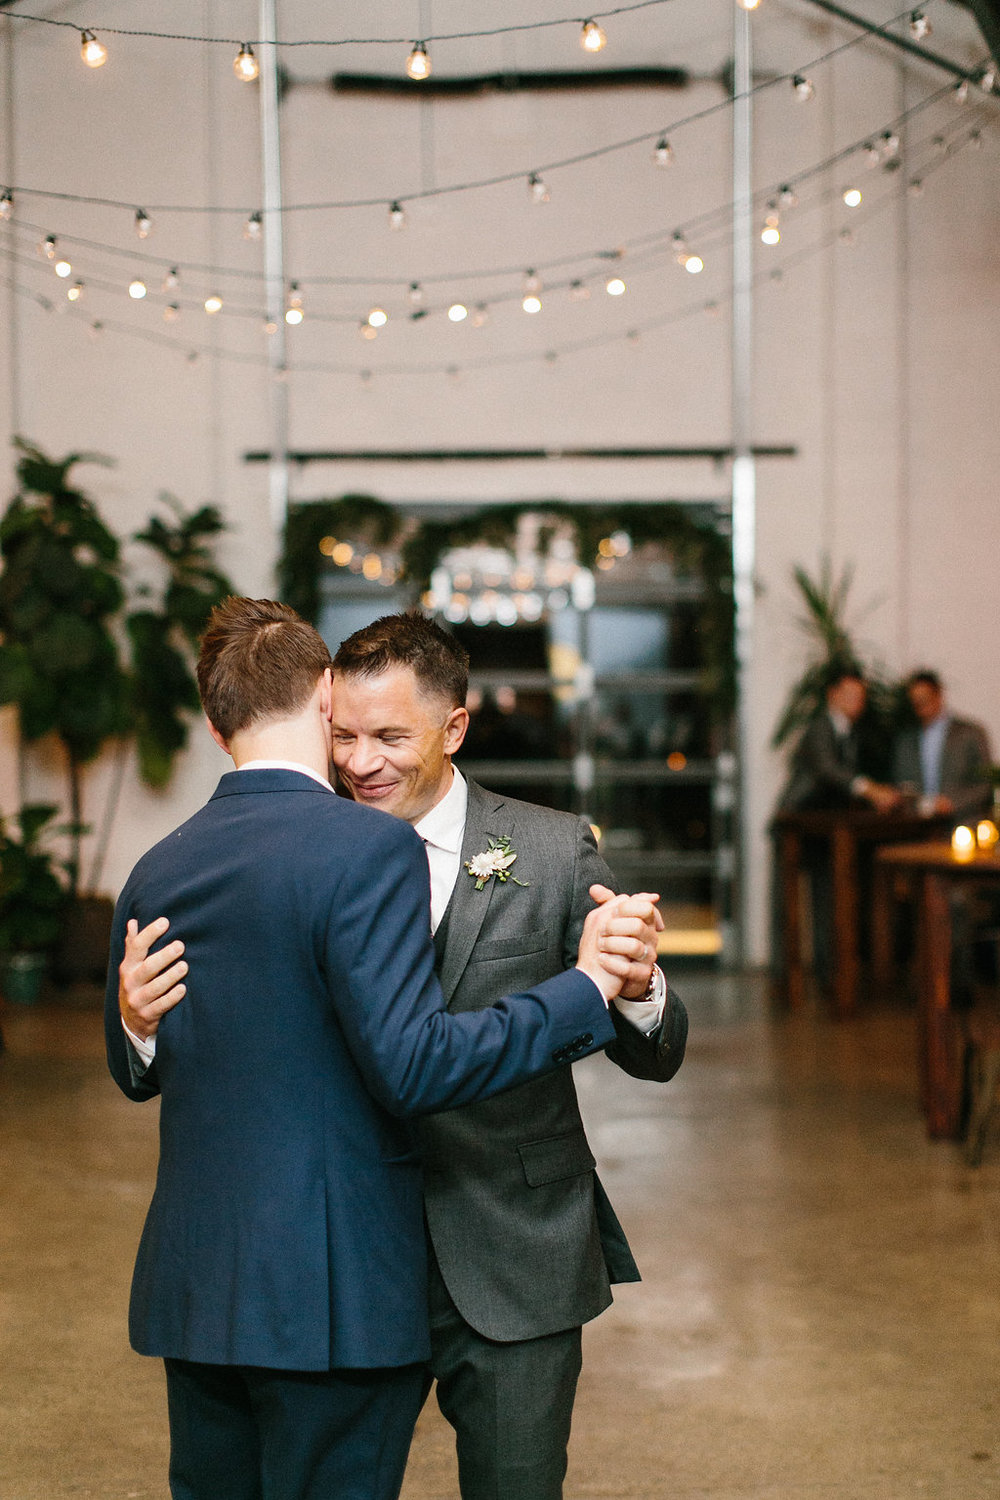 Carly Milbrath Photography | Justin and Jacob | PAIKKA Minnesota Wedding Venue | Same sex wedding with two grooms, first dance as husbands